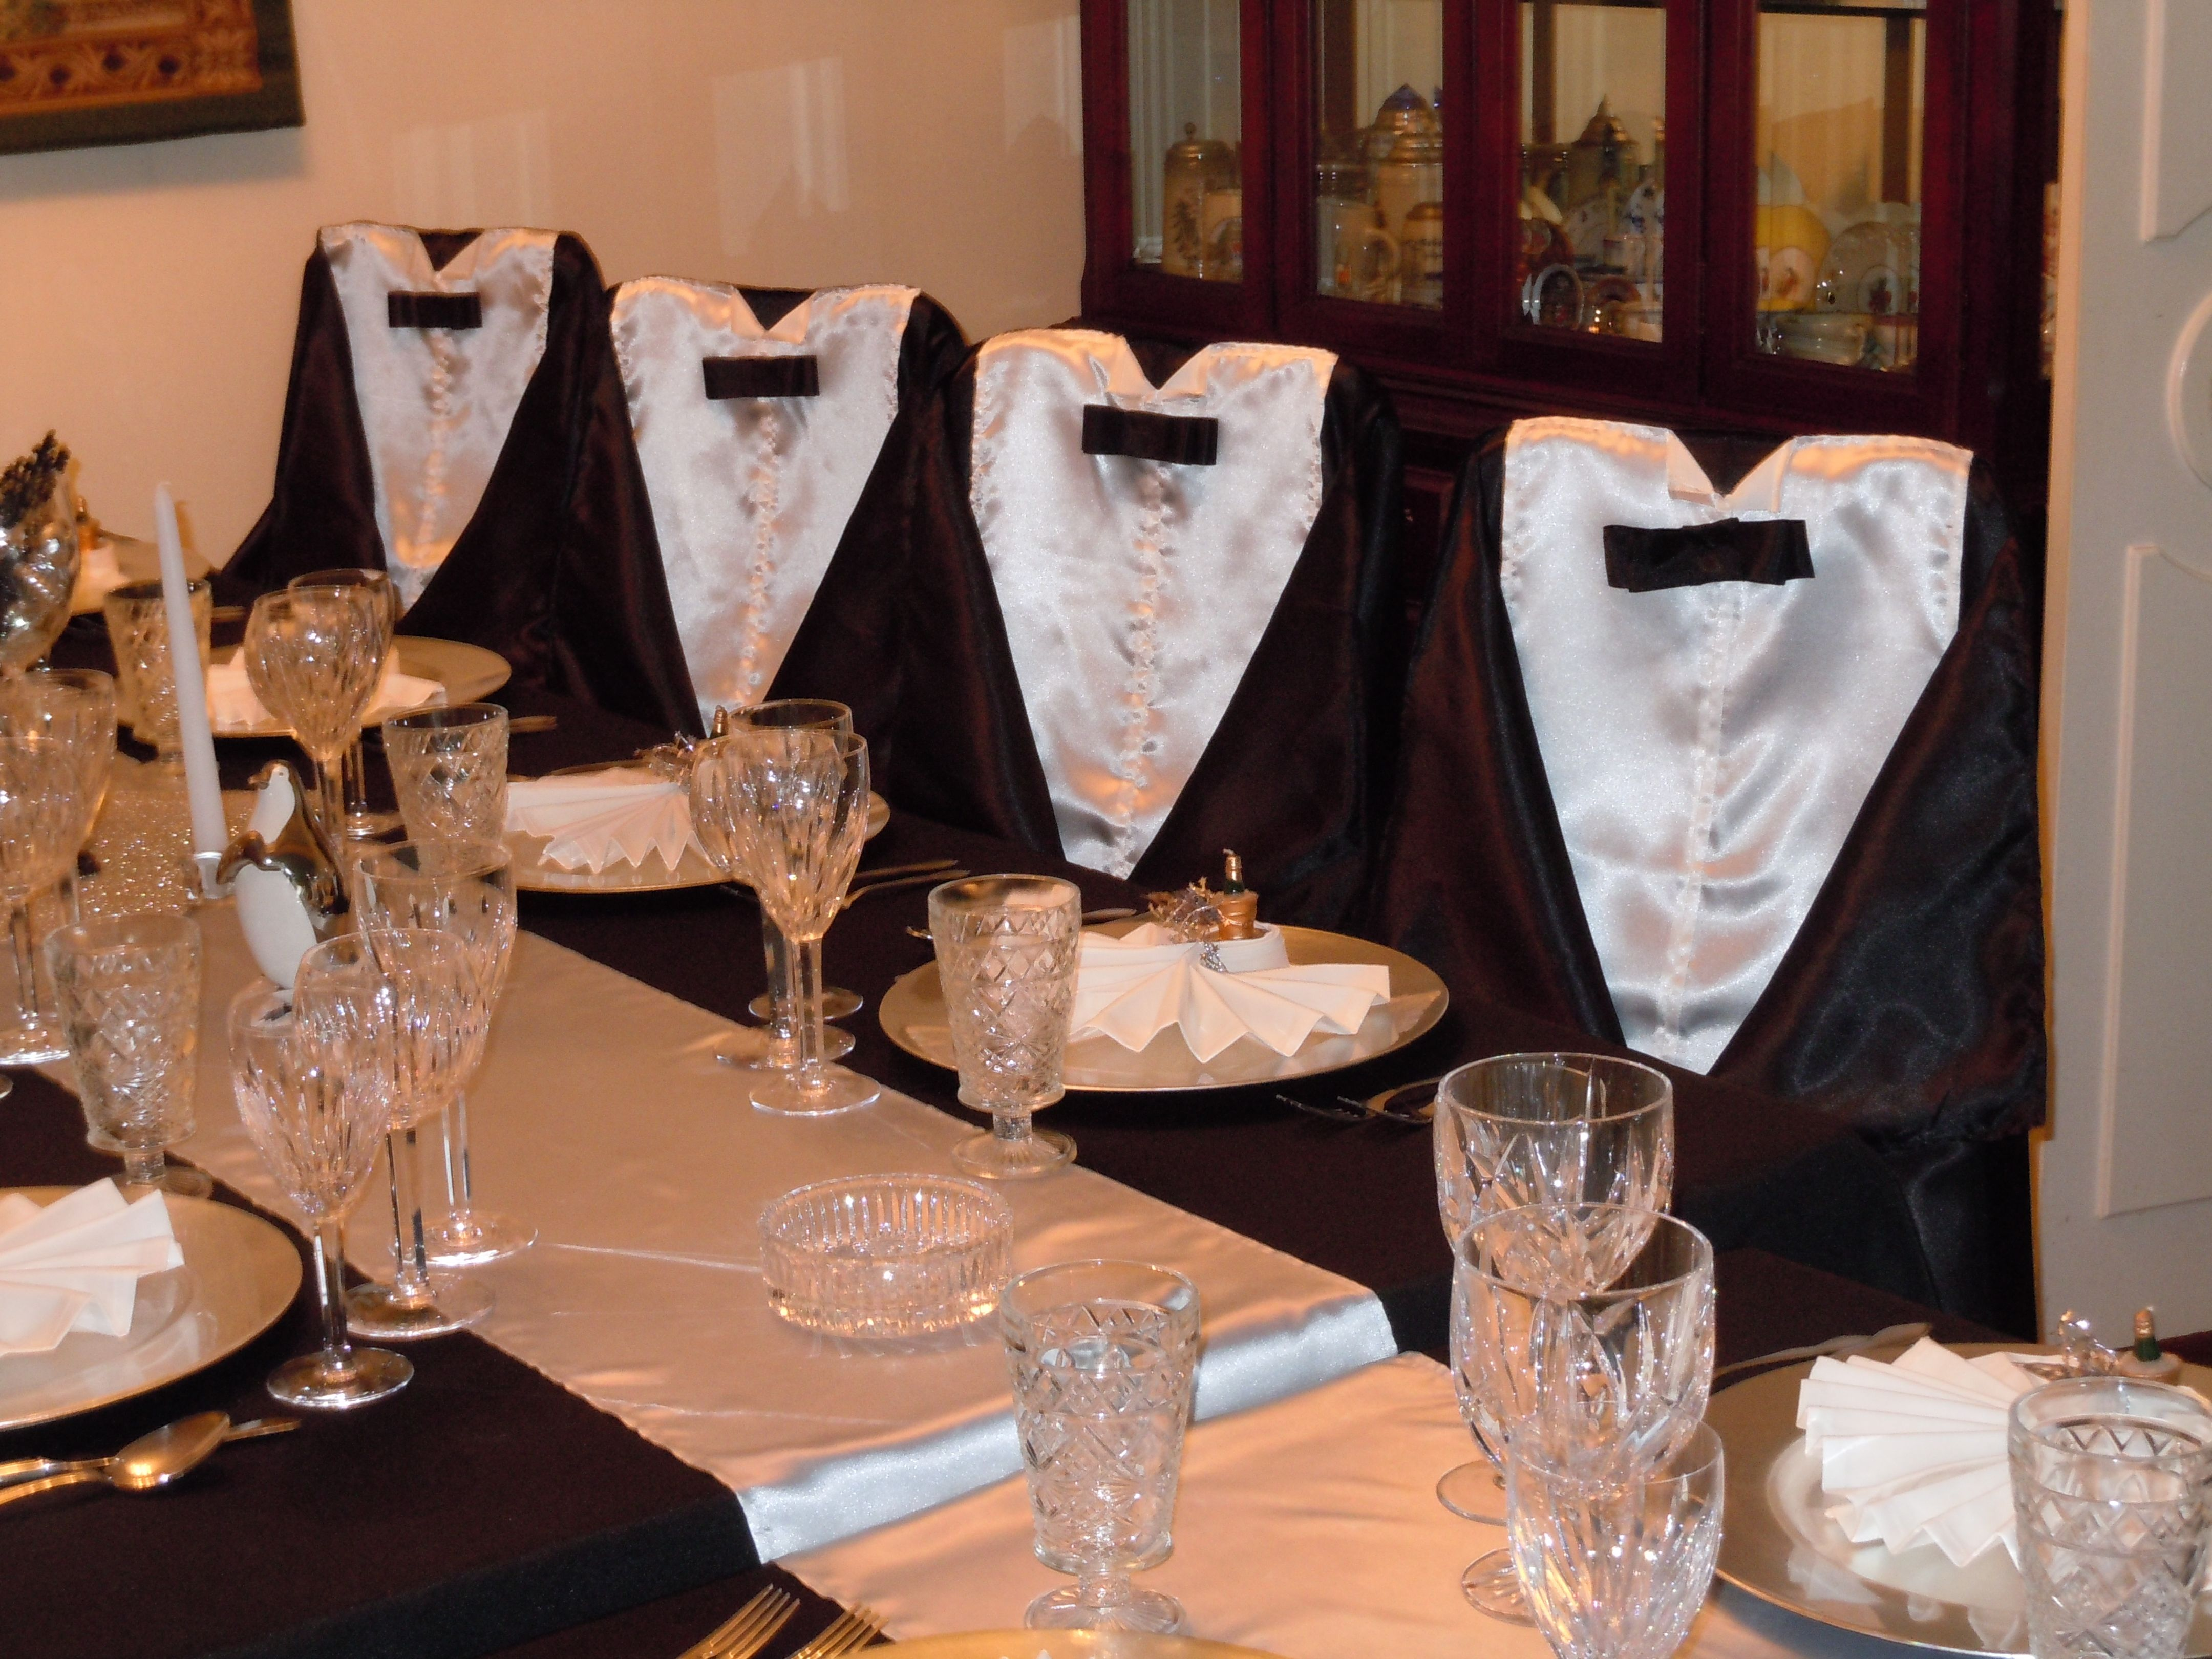 Chair Covers New Year Shiatsu Massage Years Decor Using Sateen With White Table Runners To Create Tuxedo Chairs